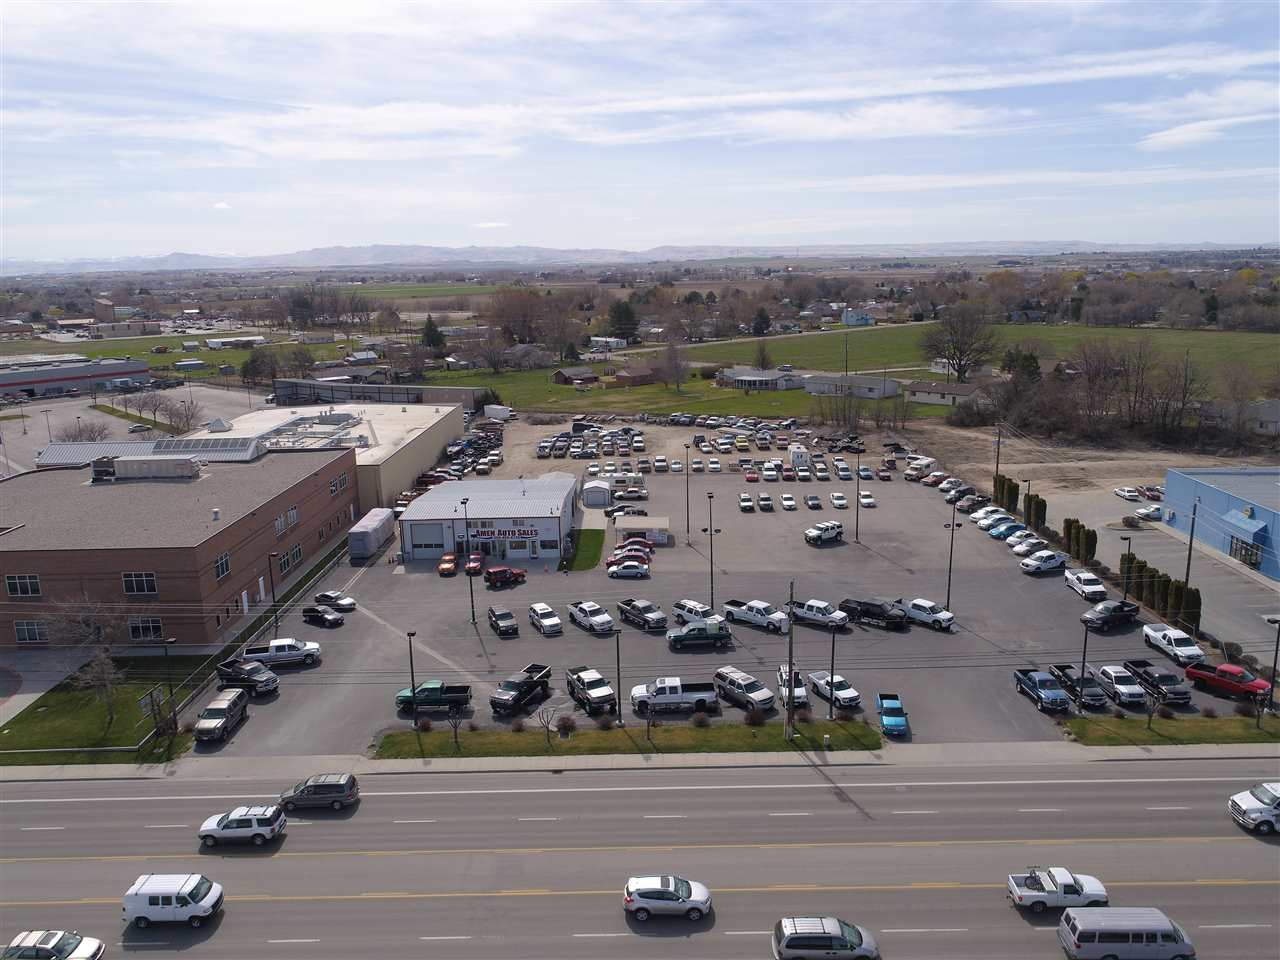 2417 Caldwell Blvd,Nampa,Idaho 83651,Business/Commercial,2417 Caldwell Blvd,98679248